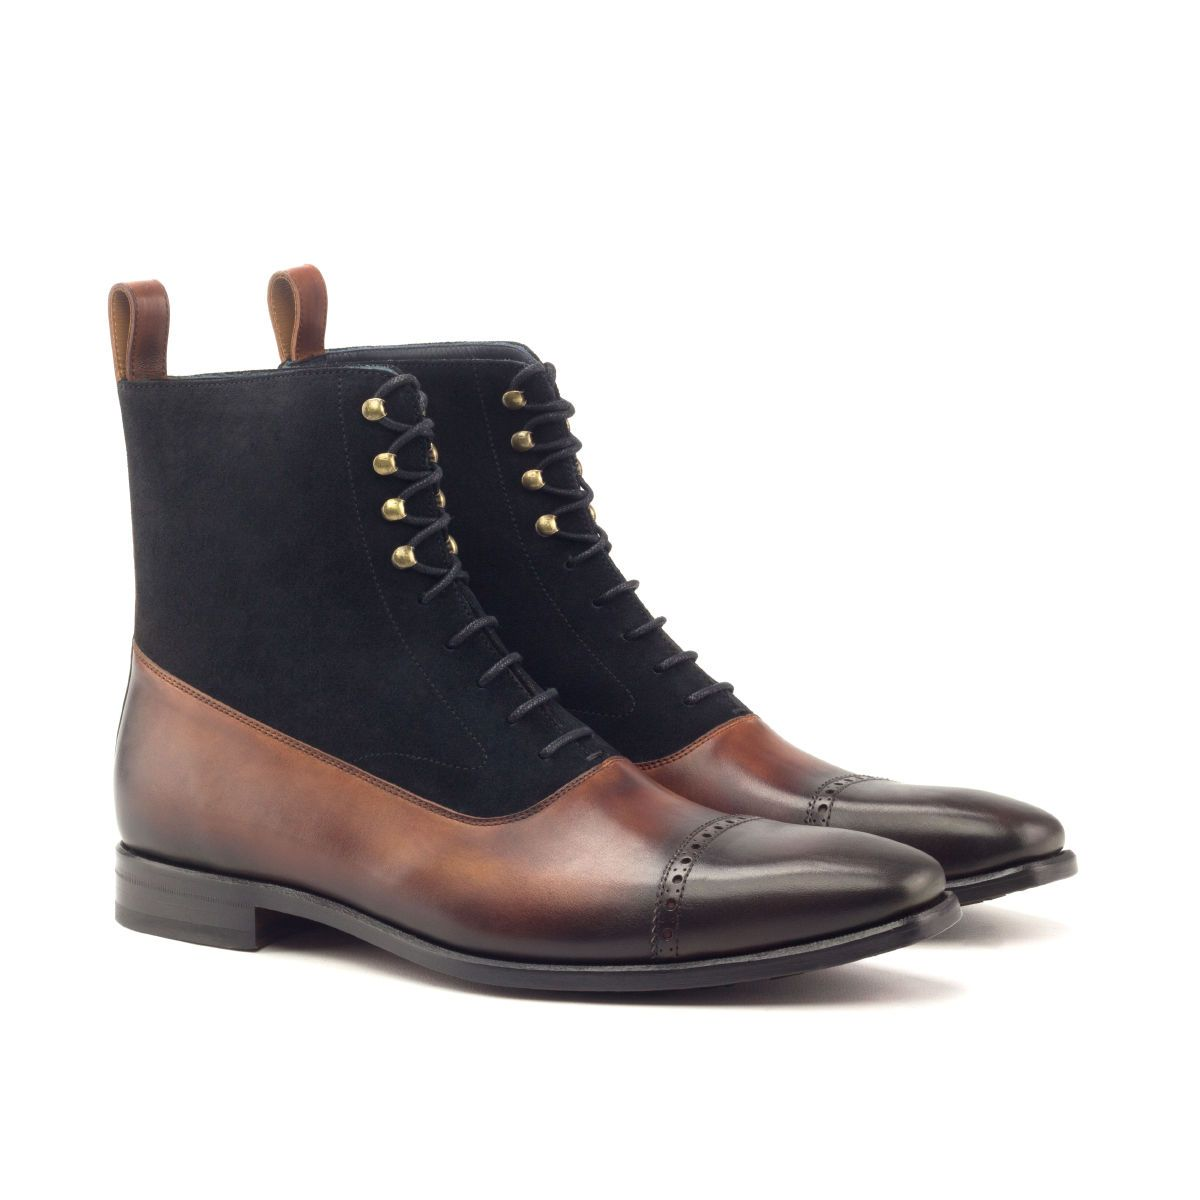 Decartes black suede and calf leather Balmoral boot